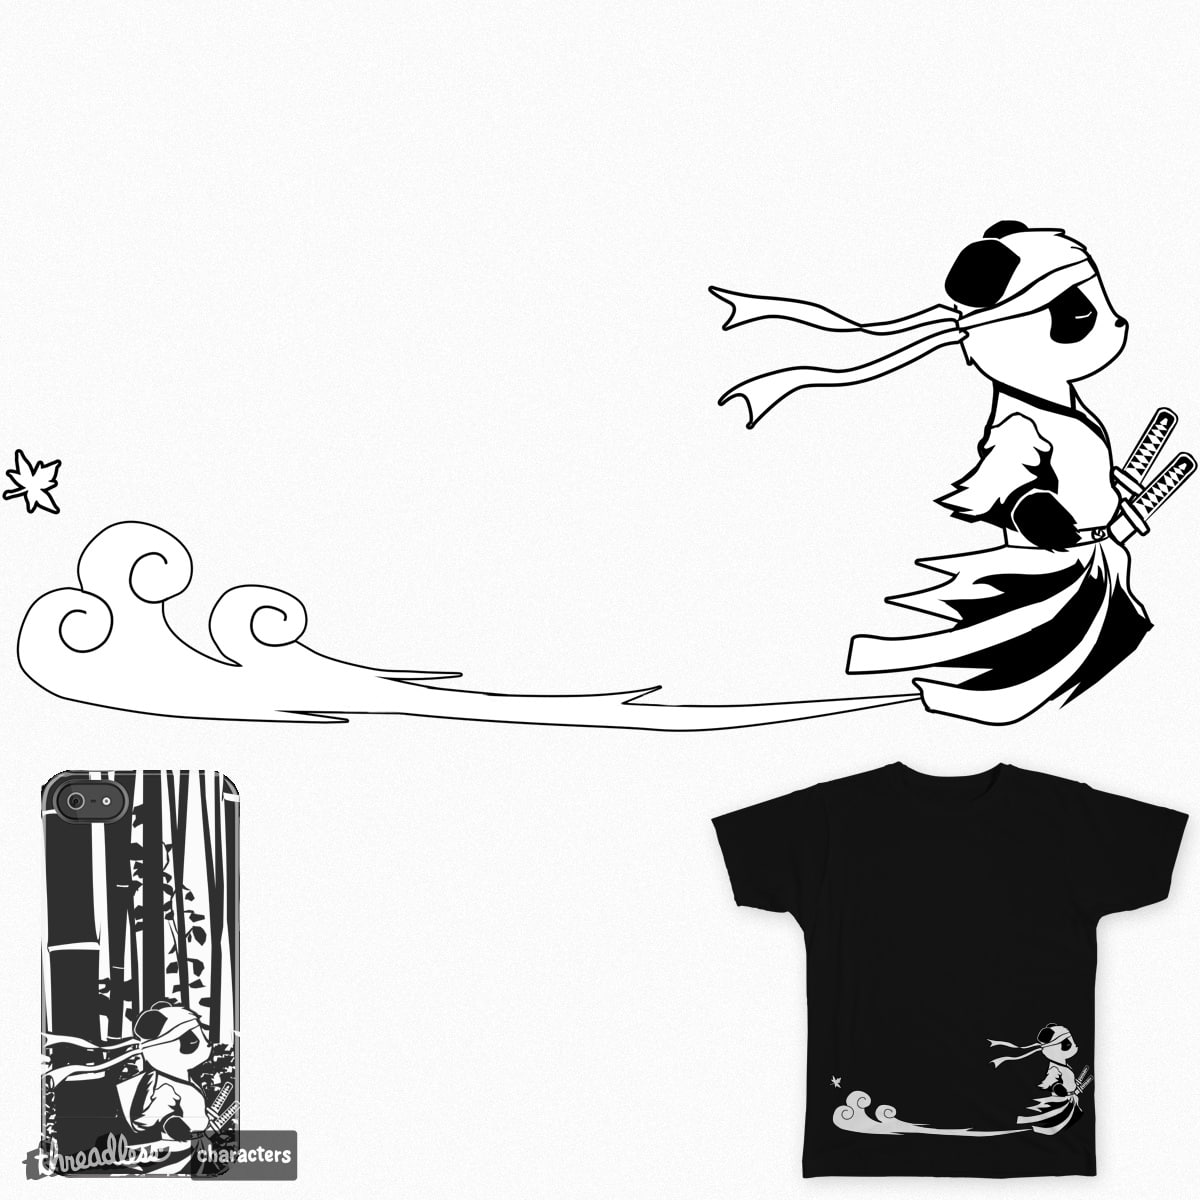 Samurai Panda by IxxZeroxxI on Threadless